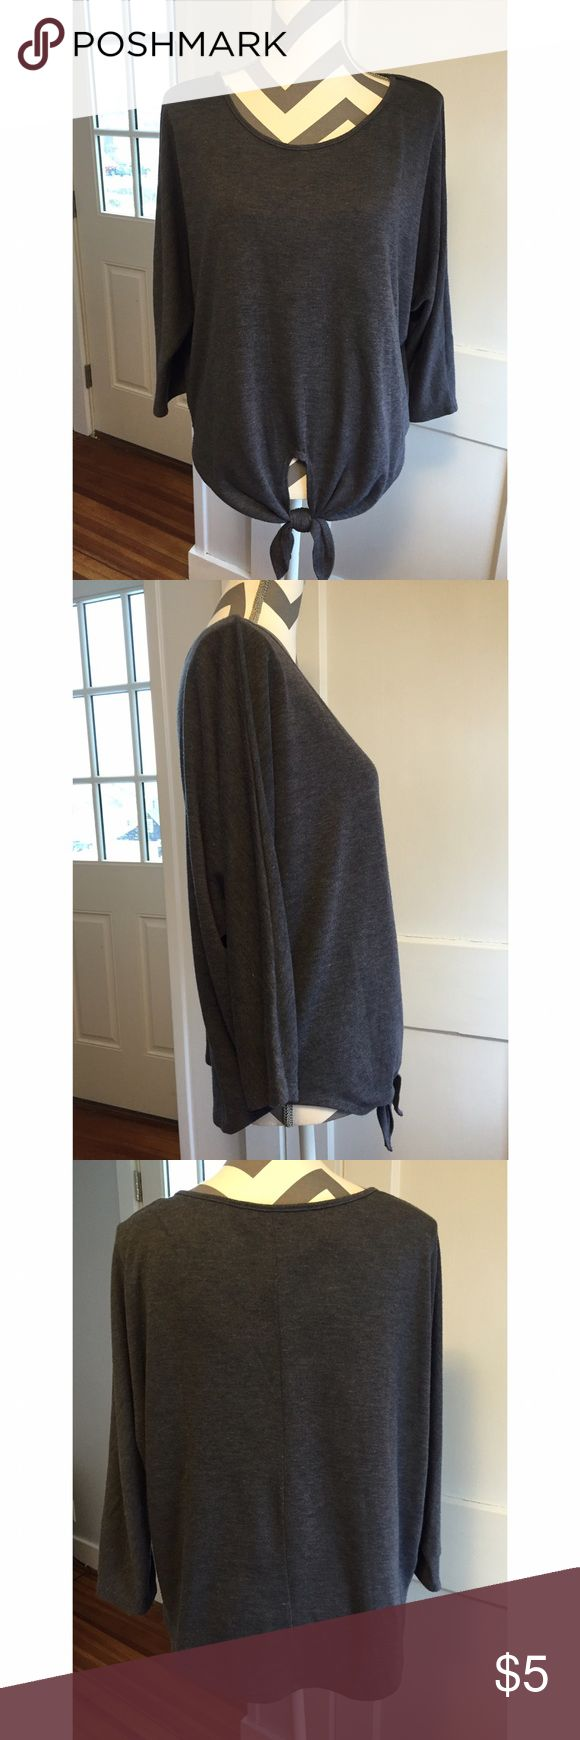 Grey shrug sweater Grey tie in front shrug sweater, tag cut out Sweaters